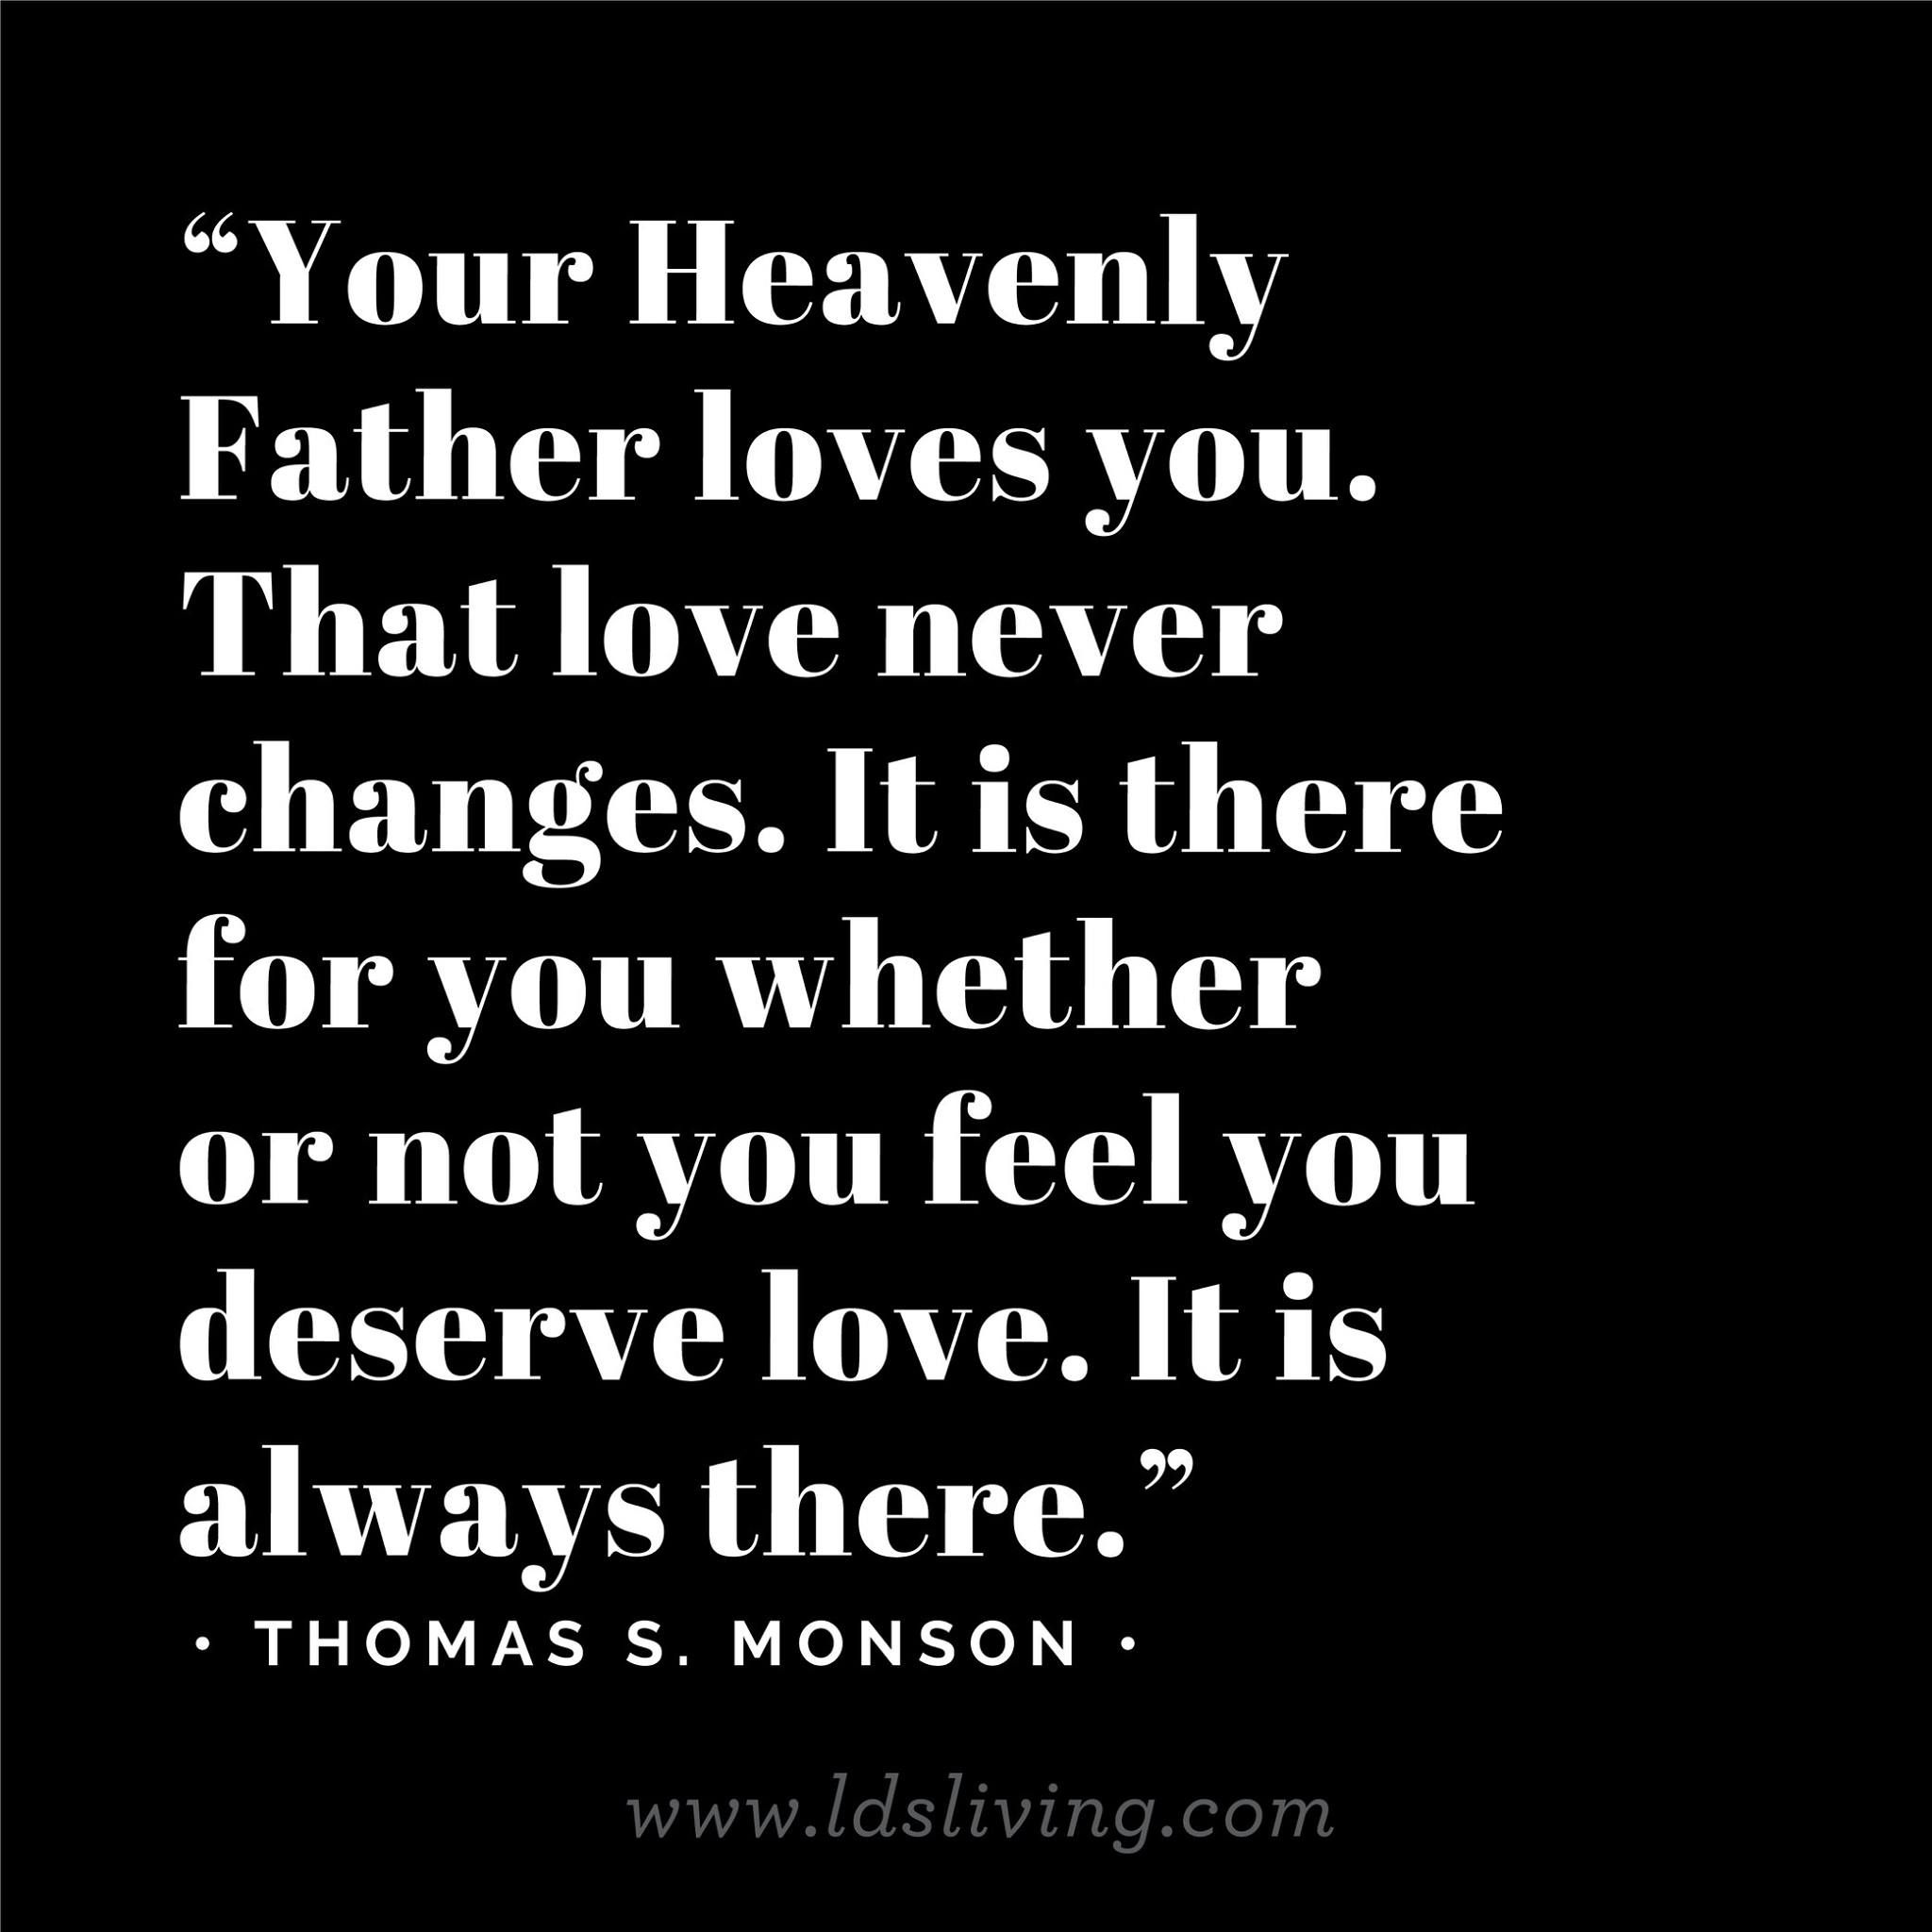 Religious Quotes About Love 23 Of Our Favorite Quotes From President Monson  President Monson